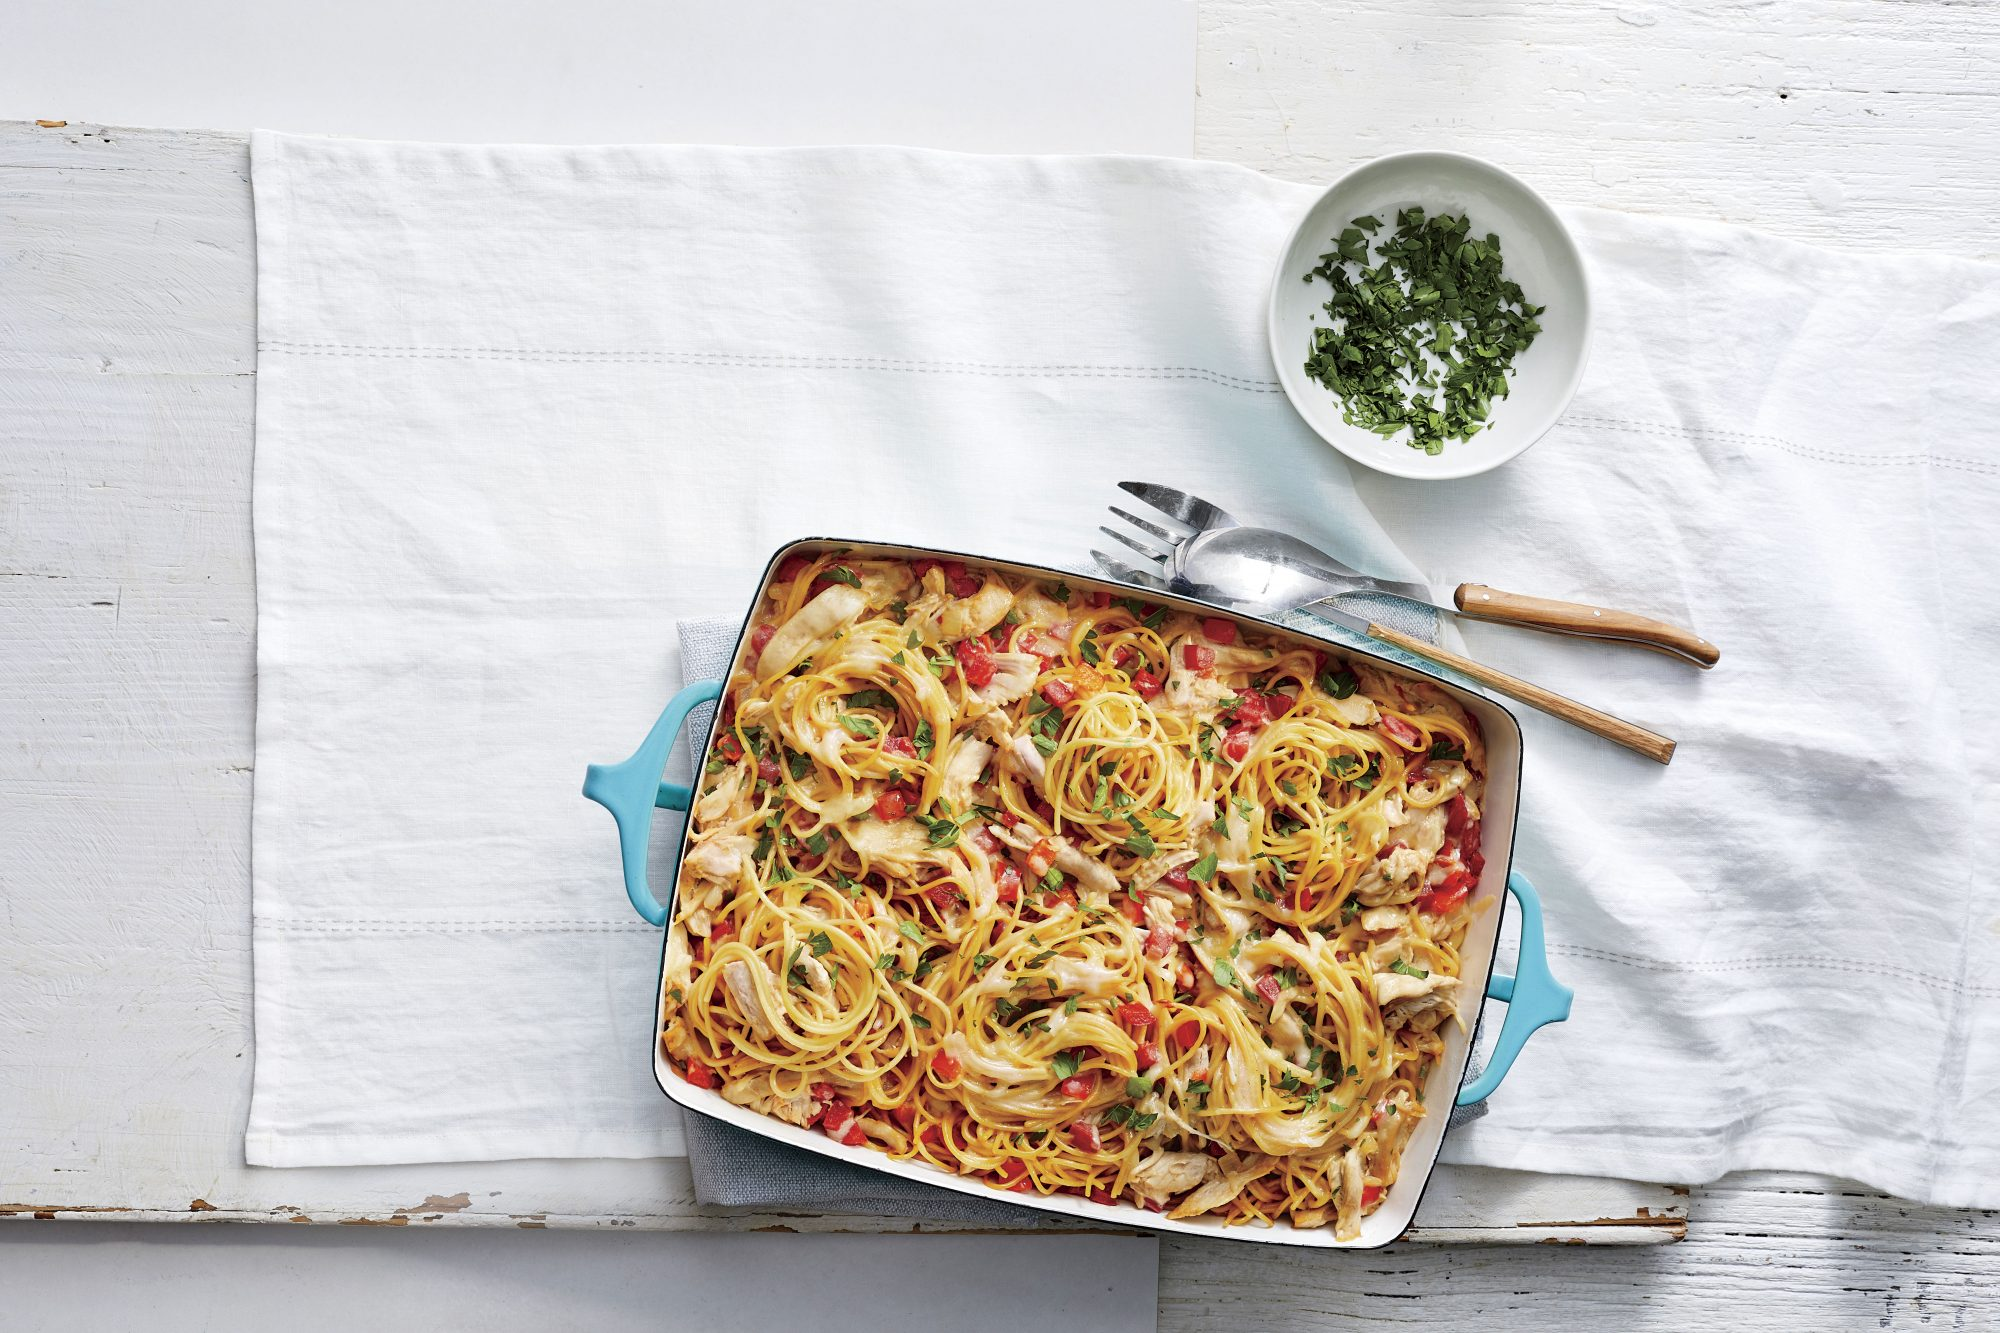 I Made This Chicken Spaghetti Casserole and My Mom Wouldn't Leave Without the Recipe